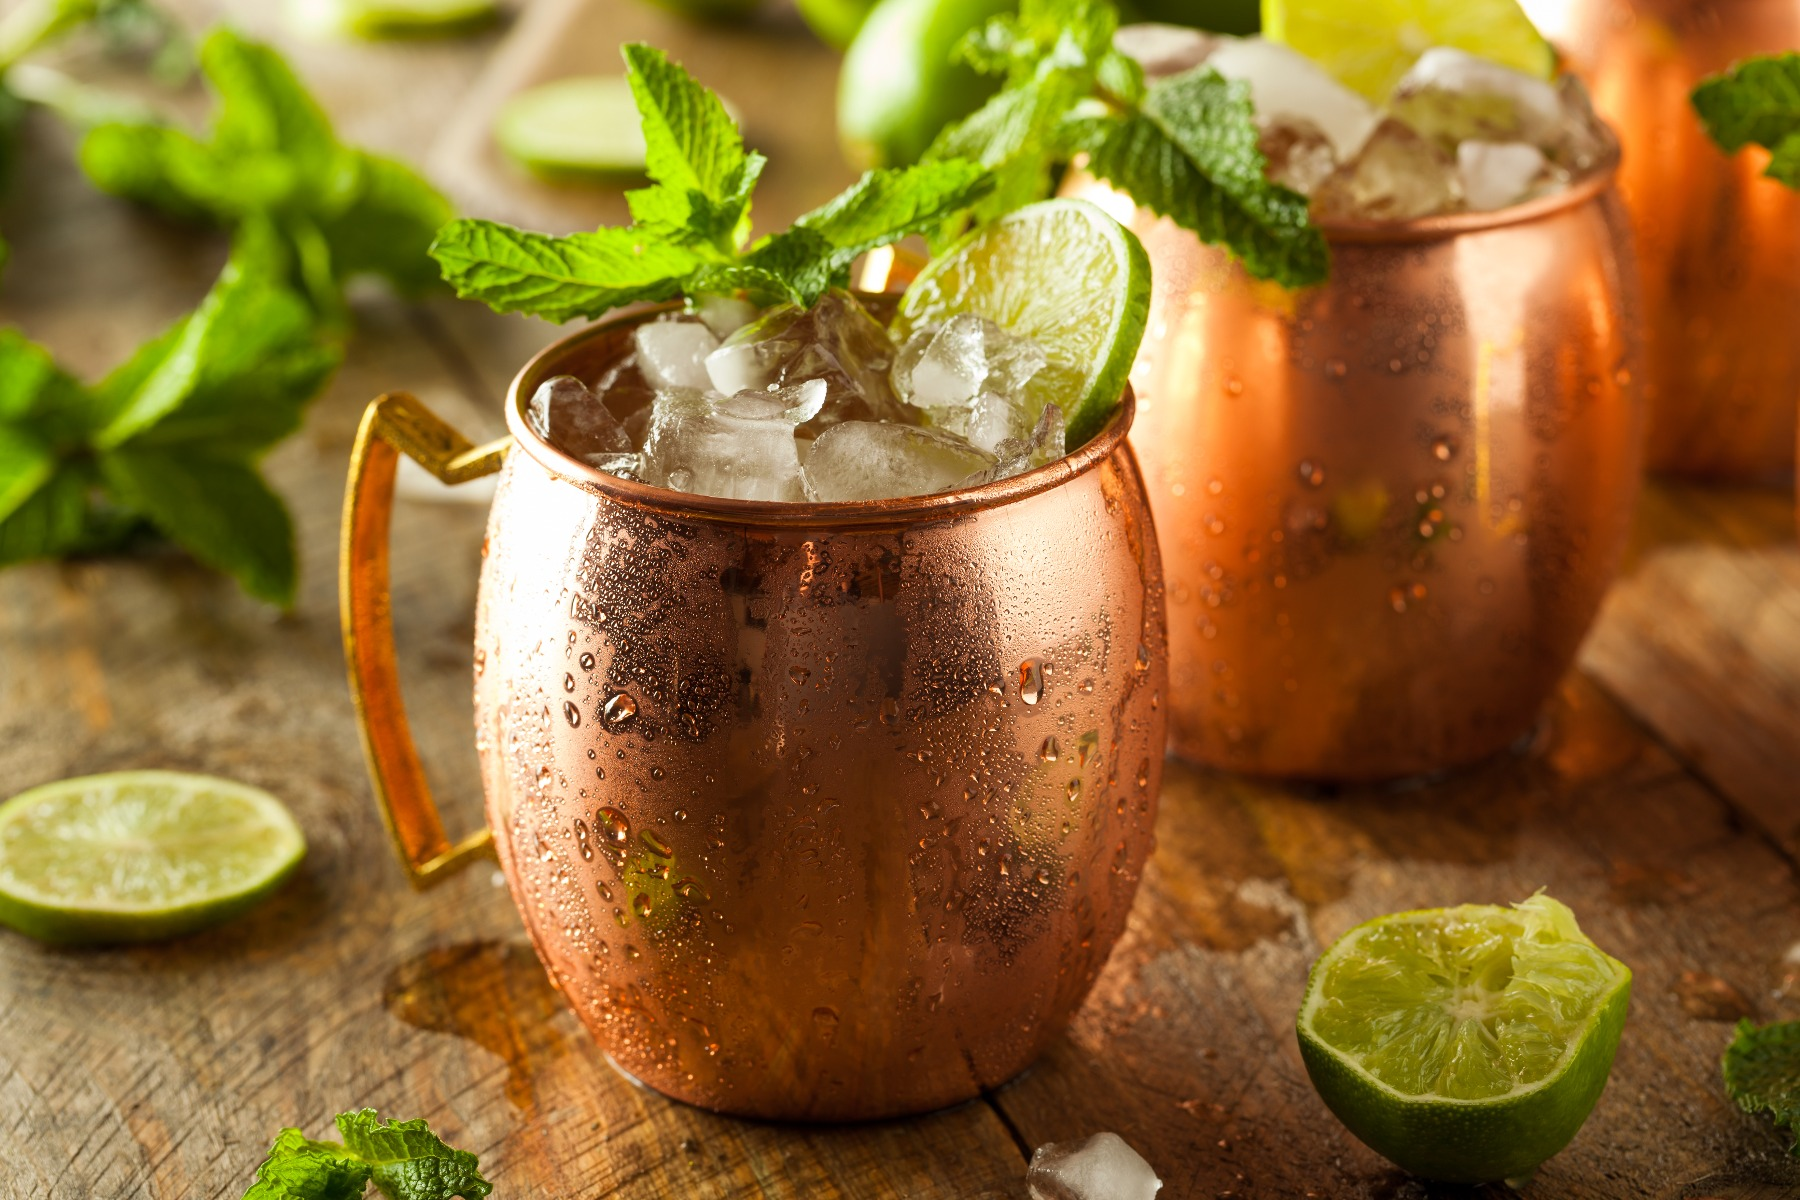 Mnoscow Mule Cocktails